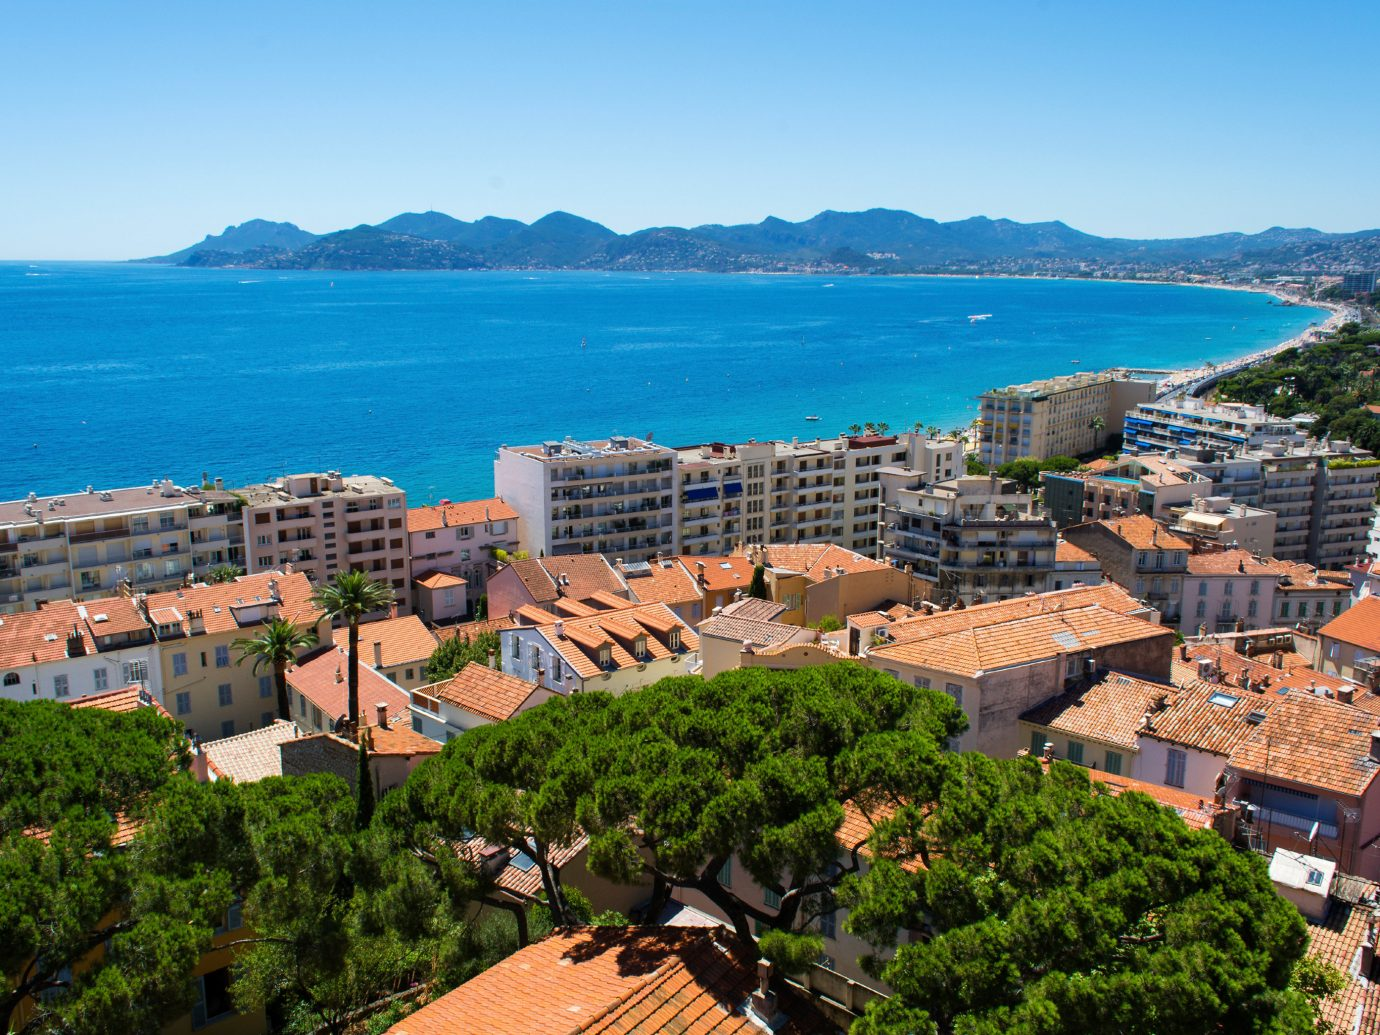 Beach Budget Scenic views sky outdoor mountain Town geographical feature Coast Sea human settlement vacation aerial photography overlooking residential area cityscape landscape bay Village City beautiful roof traveling hillside